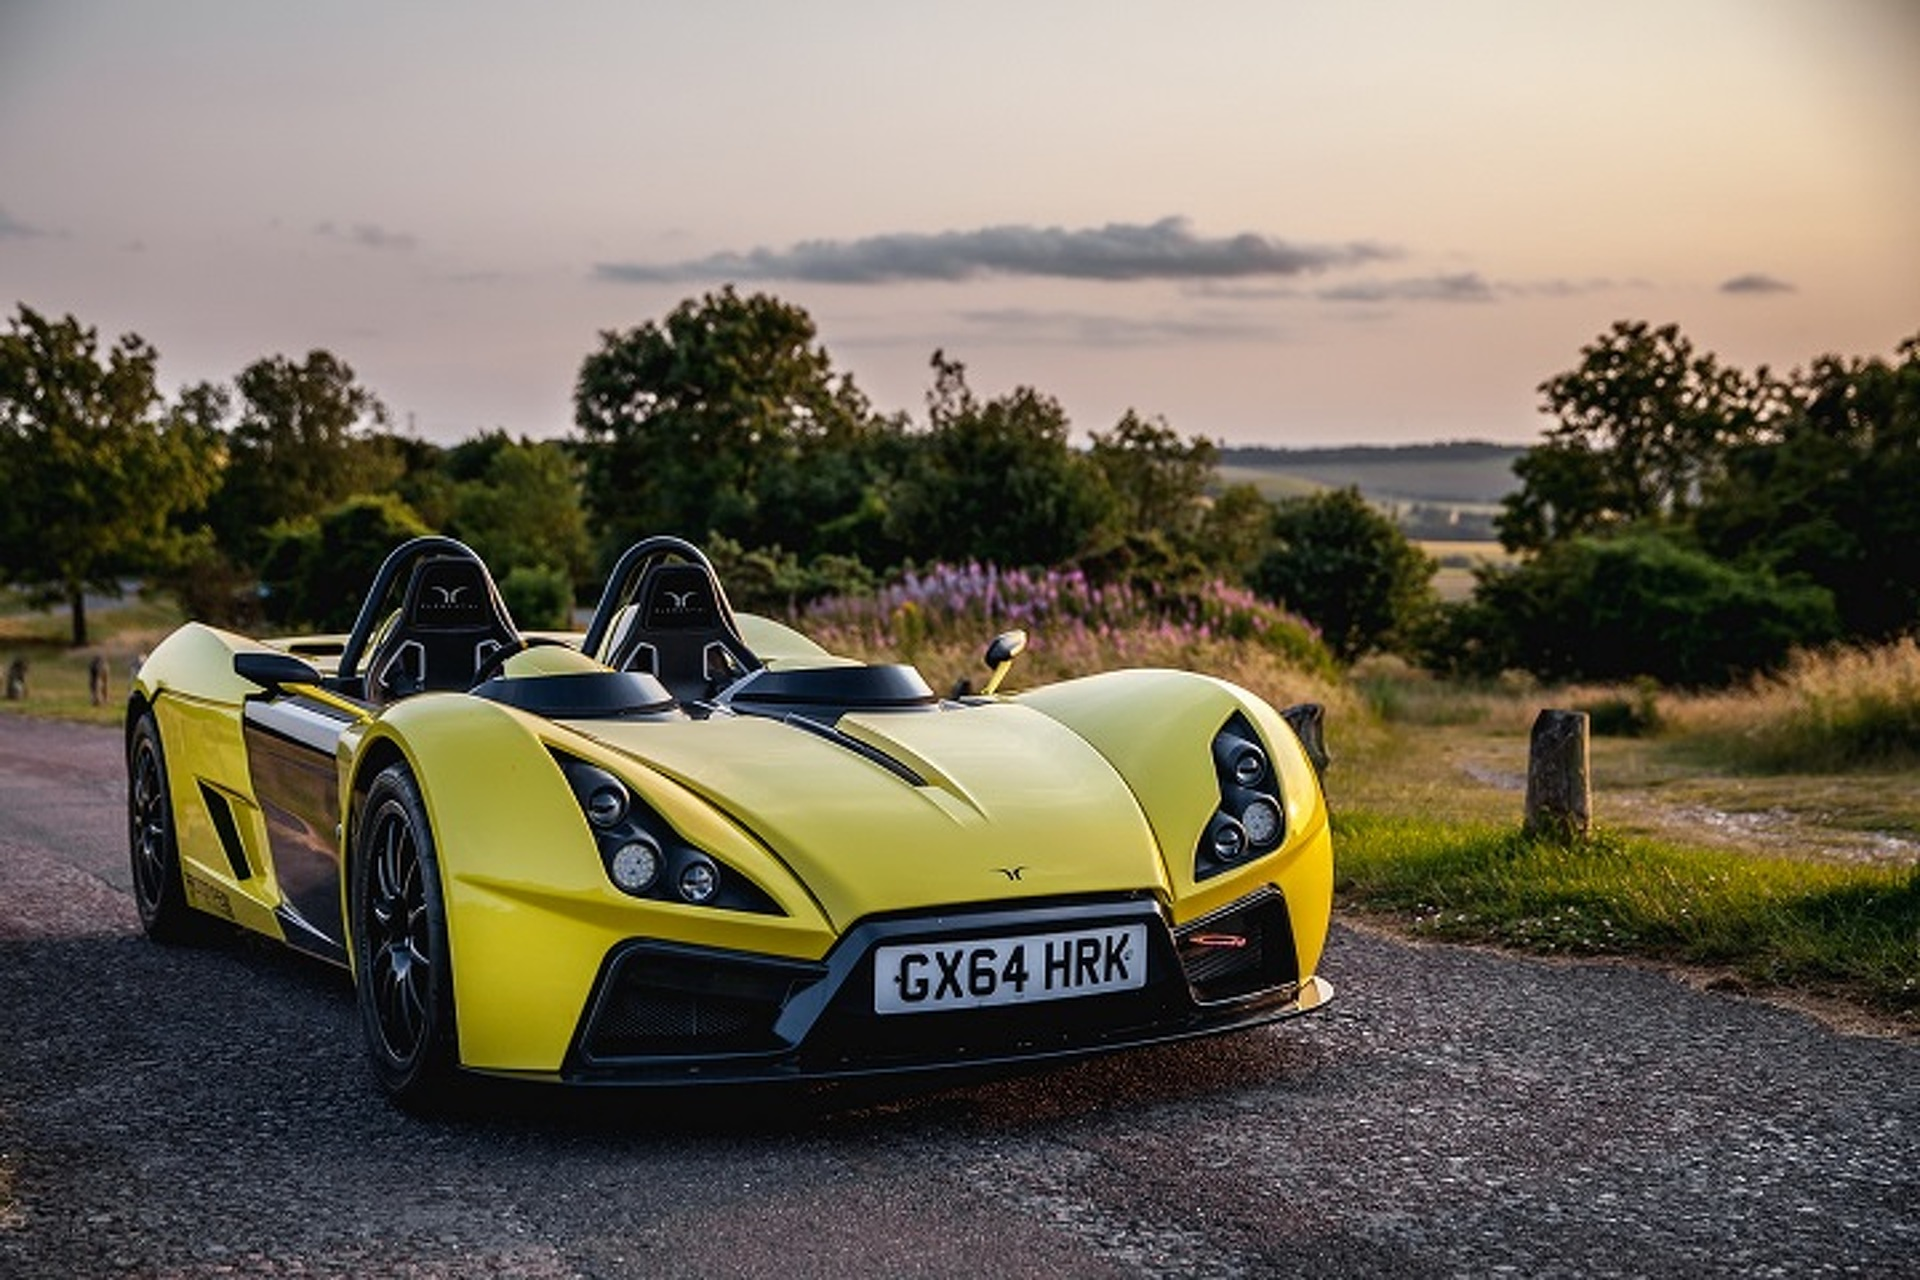 AllNew Elemental RP Is Ready To Show Off At Goodwood - Goodwood hardware car show